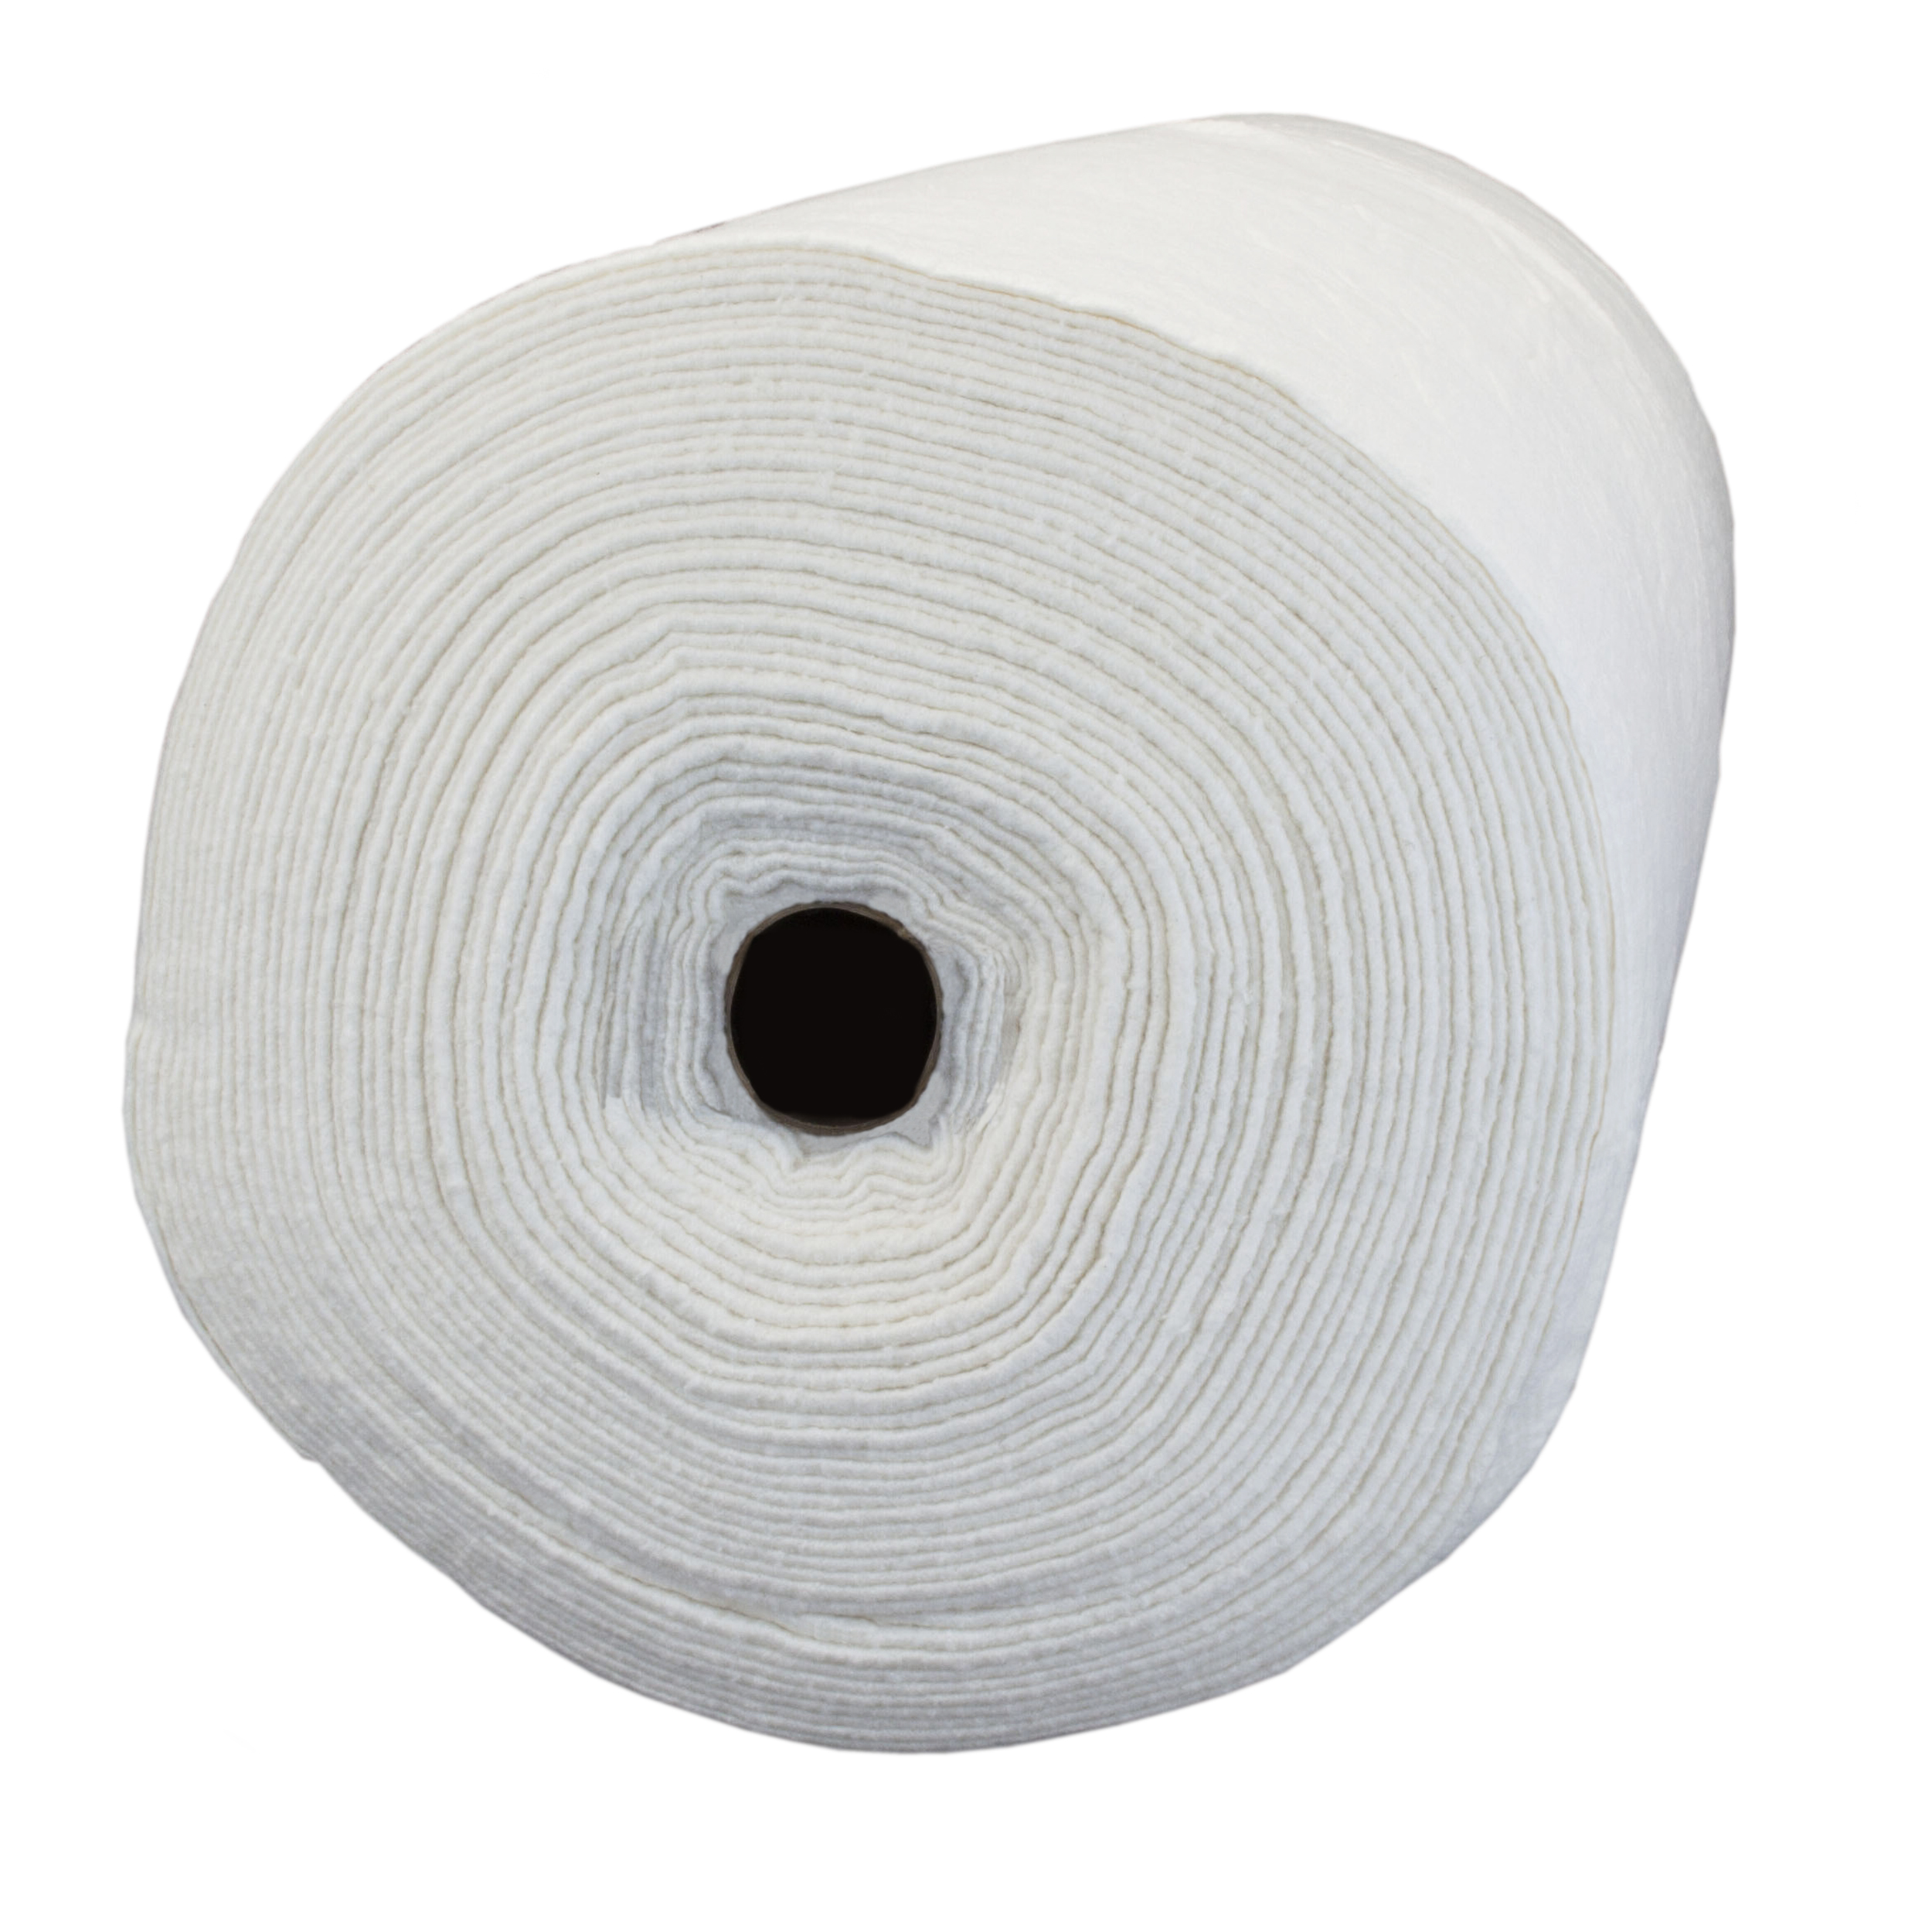 "Pellon Nature's Touch Natural Cotton With Scrim Batting 90"" x 30 yds Roll"